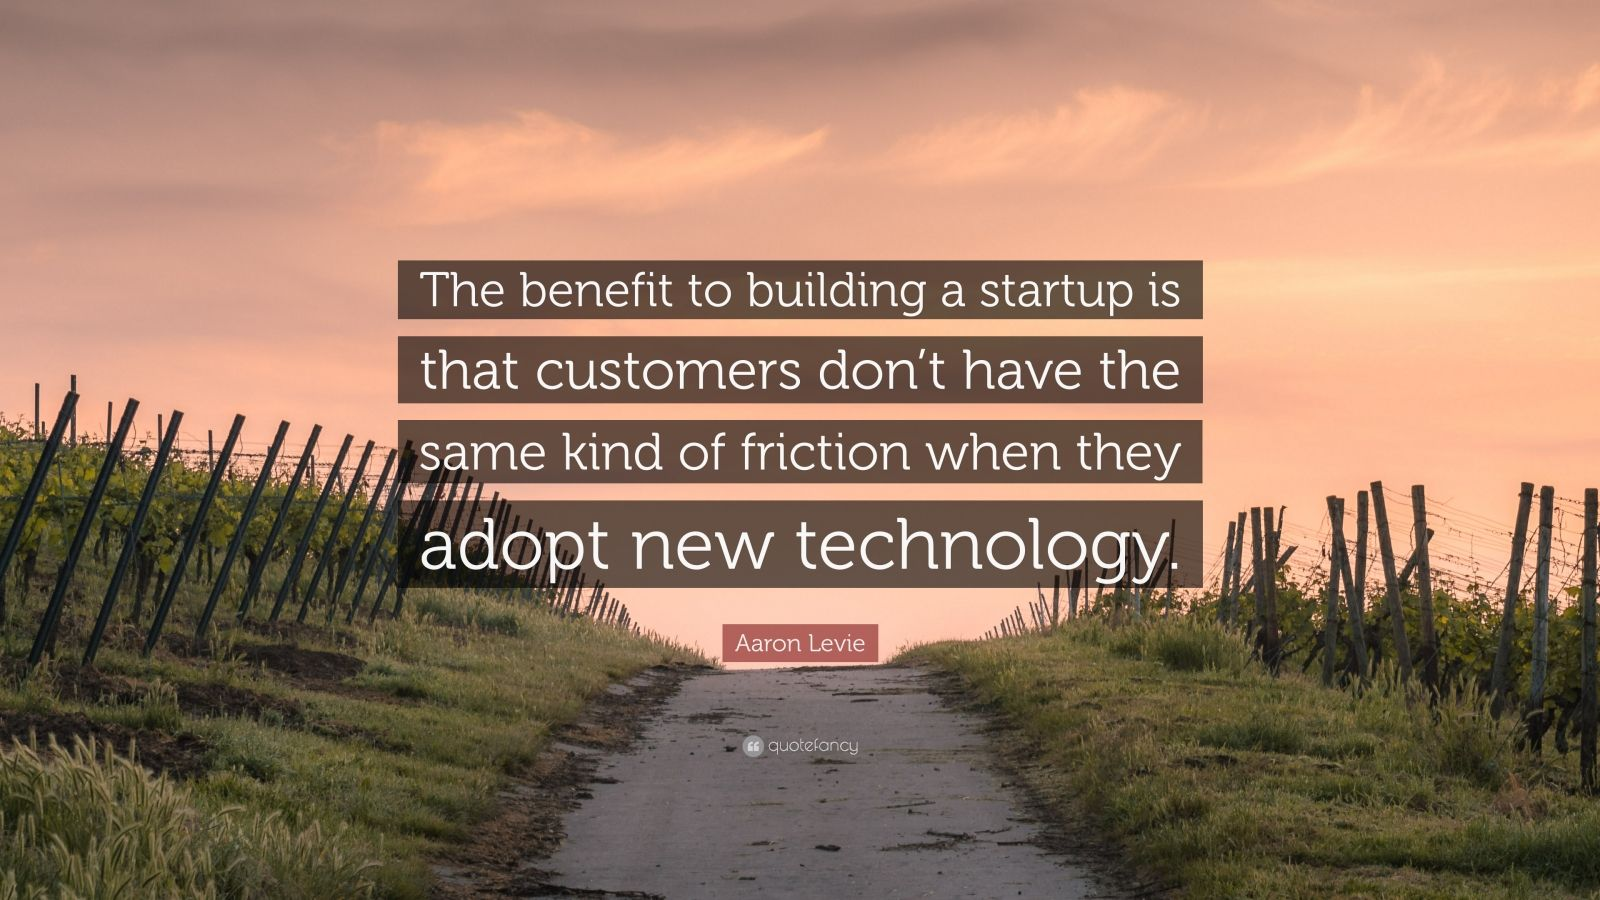 """Aaron Levie Quote: """"The benefit to building a startup is that customers don't have the same kind of friction when they adopt new technology."""""""